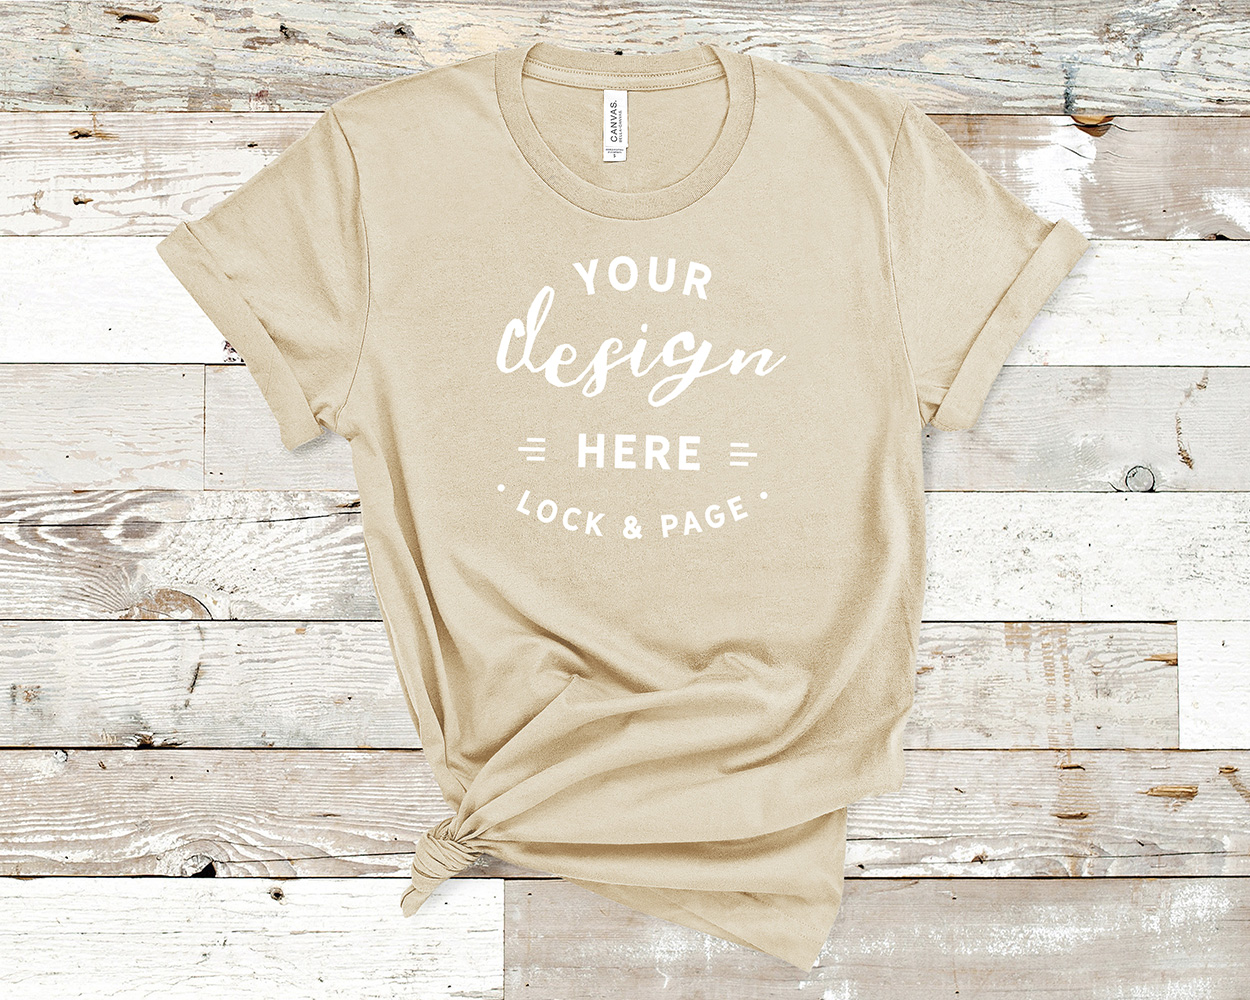 Bella Canvas 3001 Mockup T-Shirt Bundle All Colors On Wood example image 21